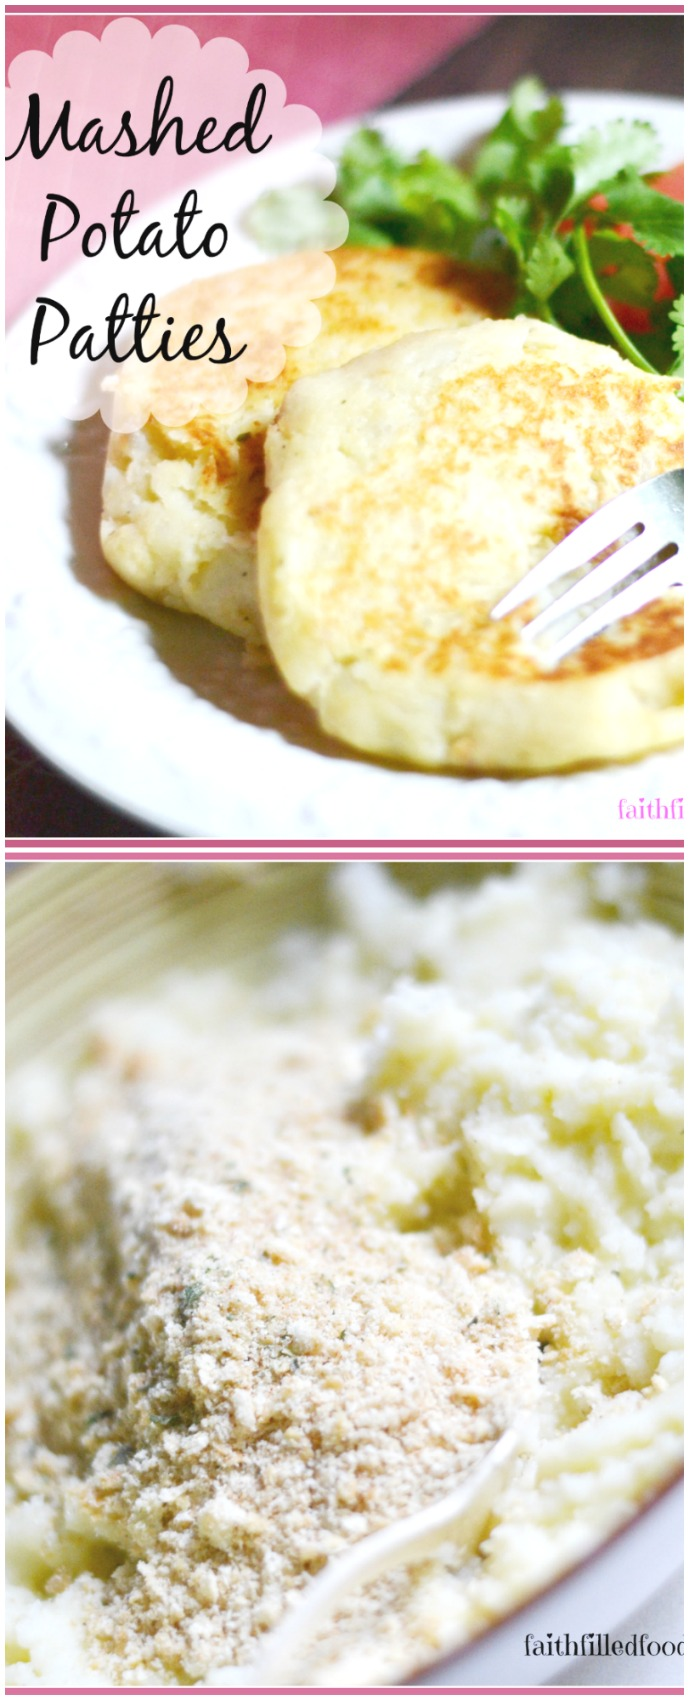 Easy Leftover Mashed Potato Cakes 4 ingredients!